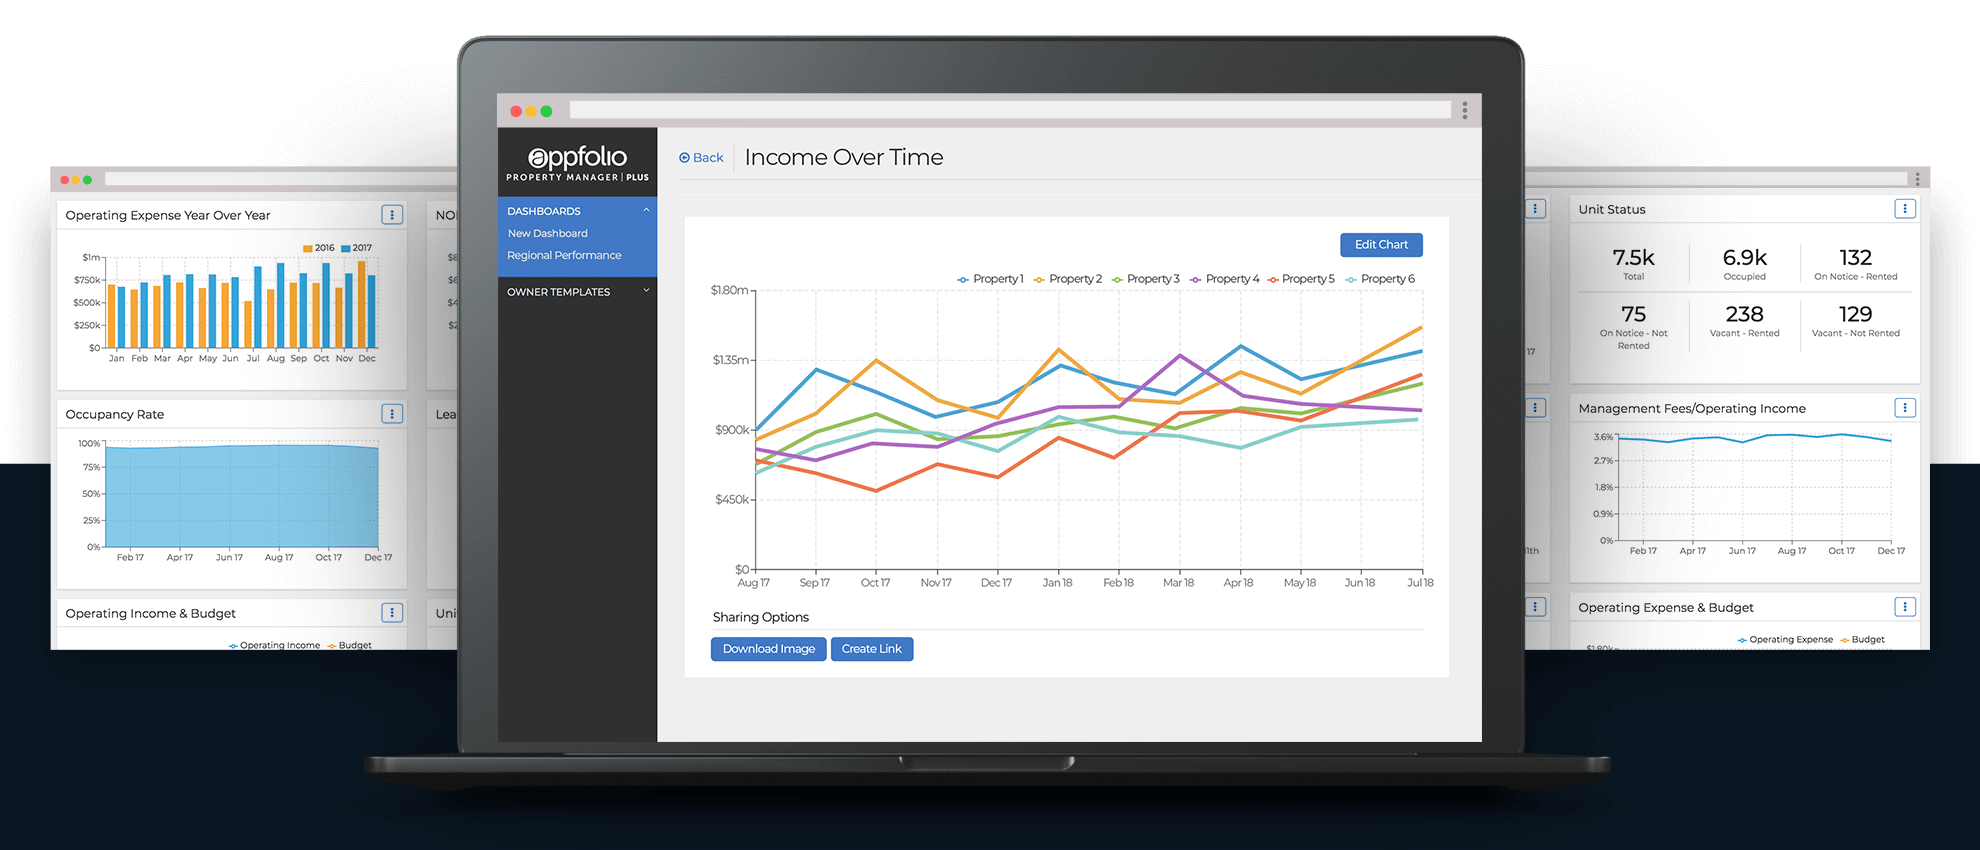 AppFolio screenshot of Income Over Time line graph displayed on a laptop & other reporting charts.